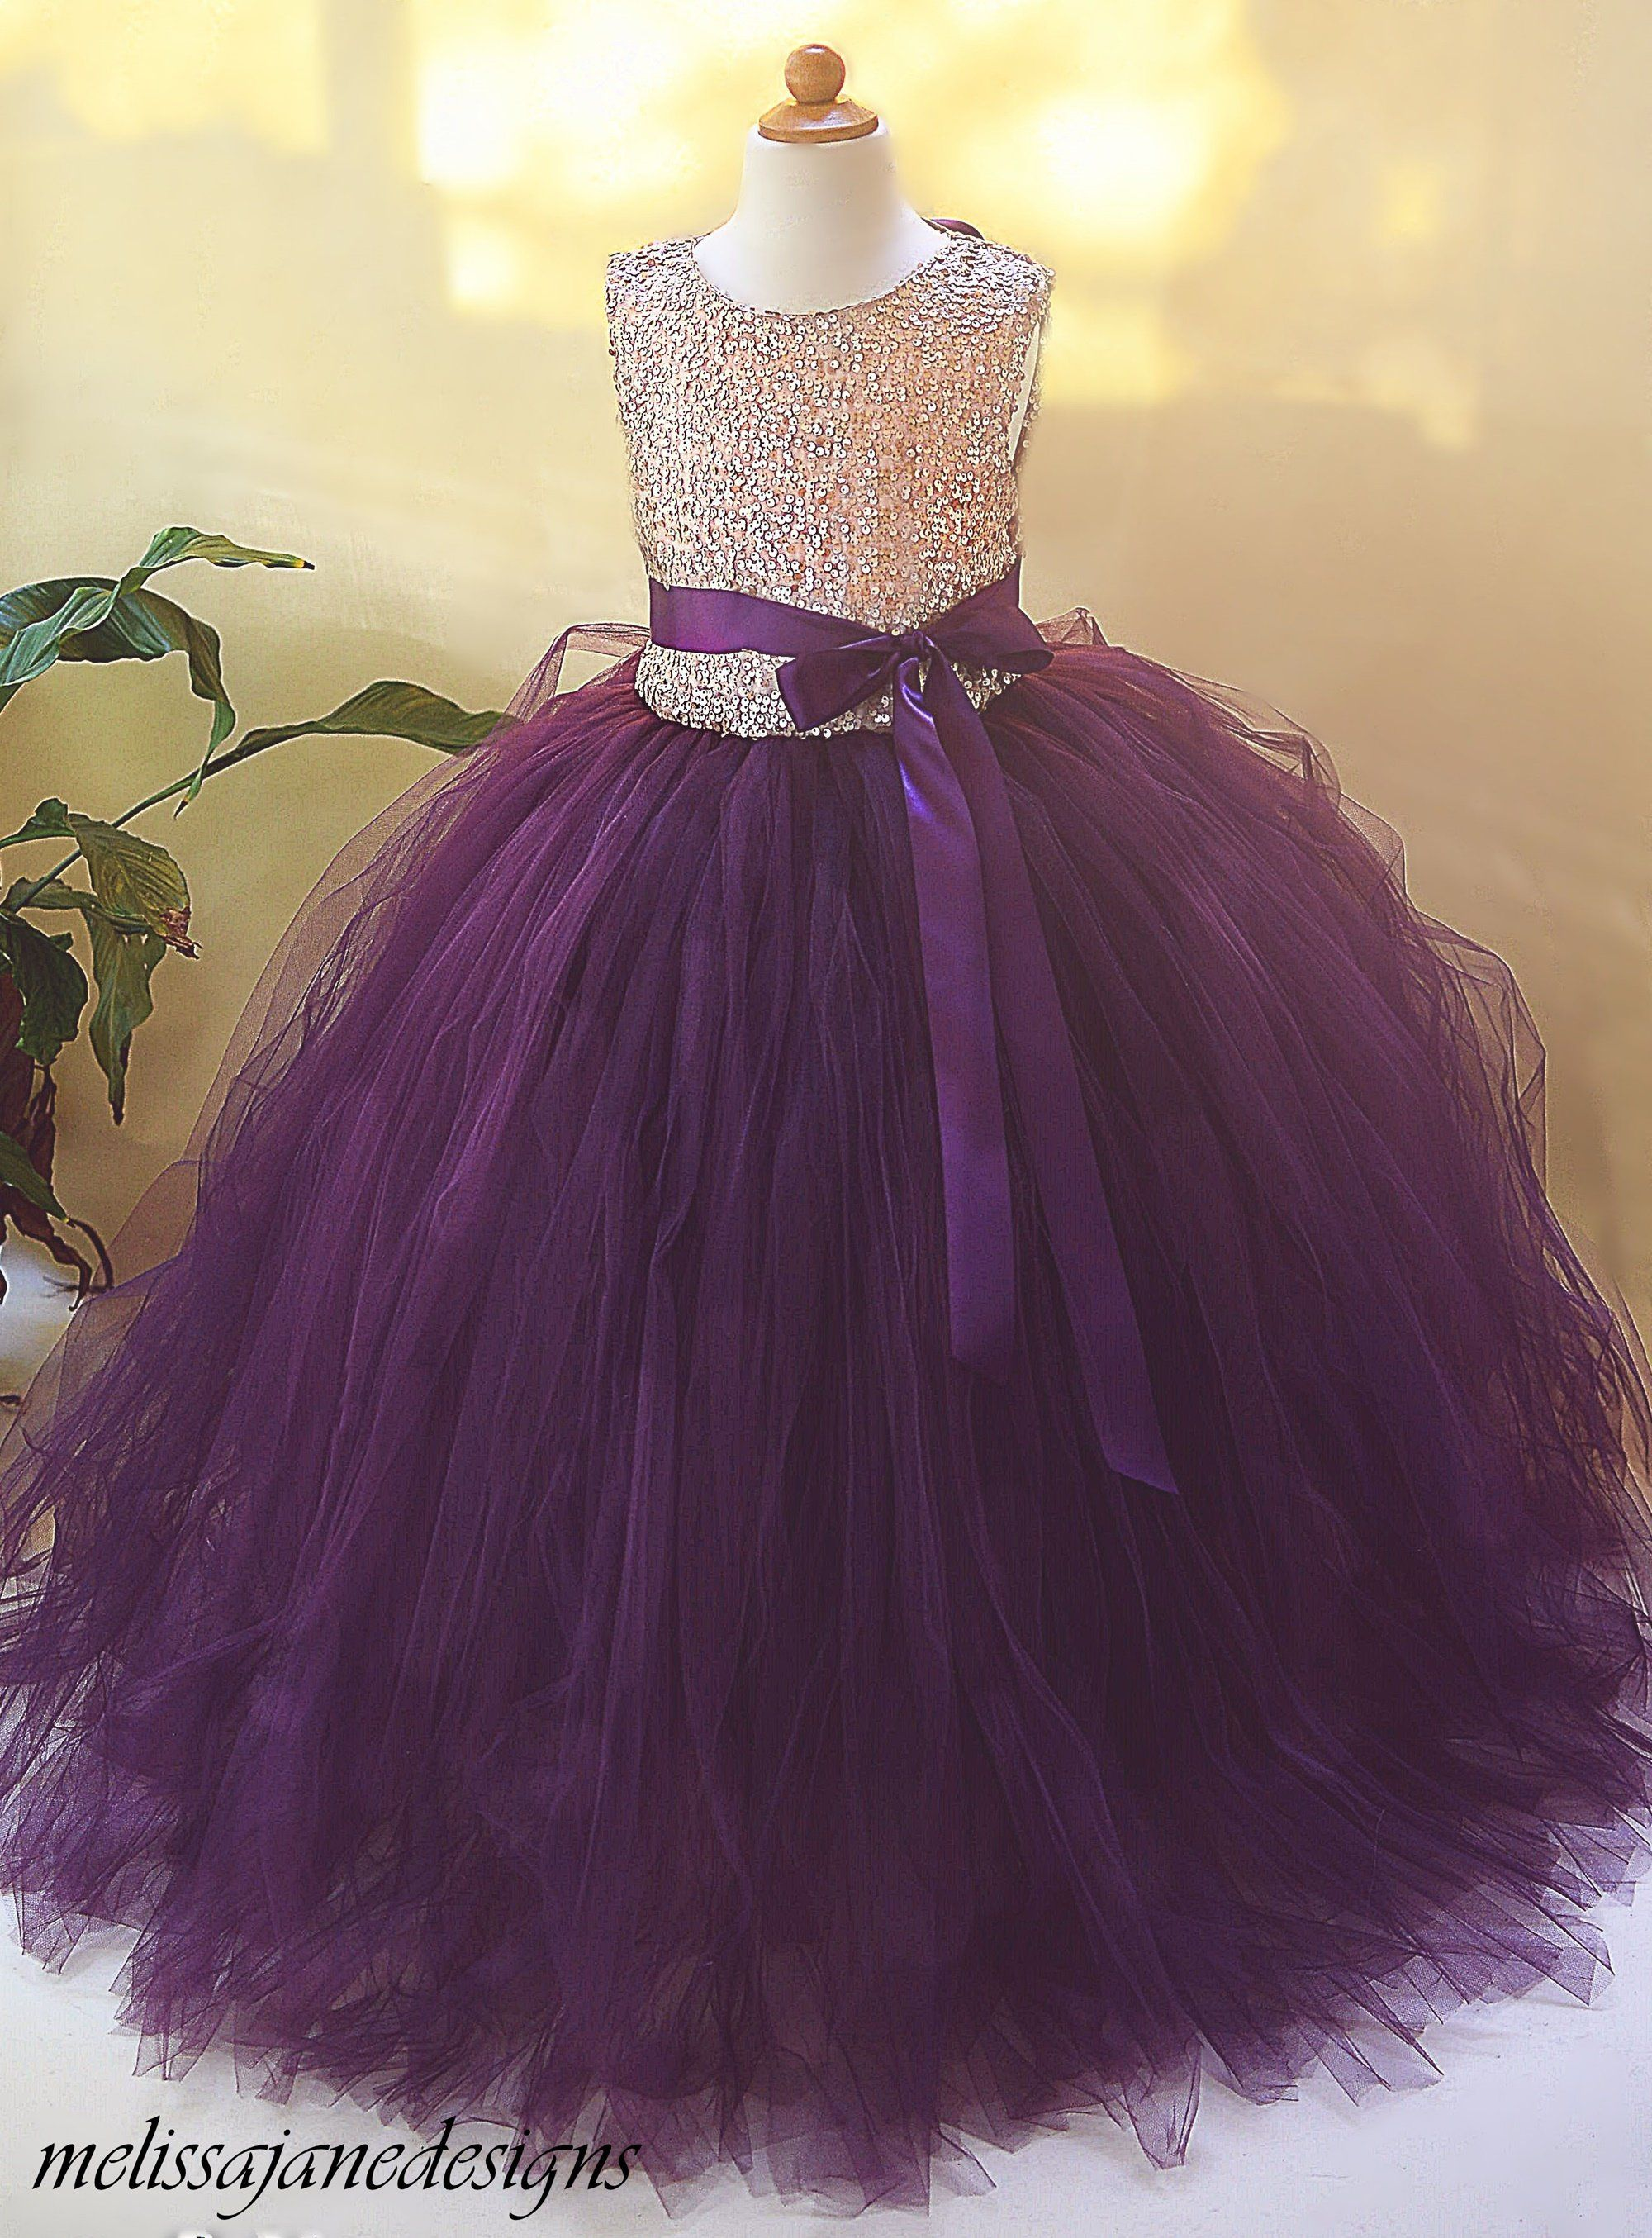 1f2a3c3ab Gold and Plum/eggplant Sequin Flower Girl Dress | MelissaJaneDesigns |  Quality Children's Dresses